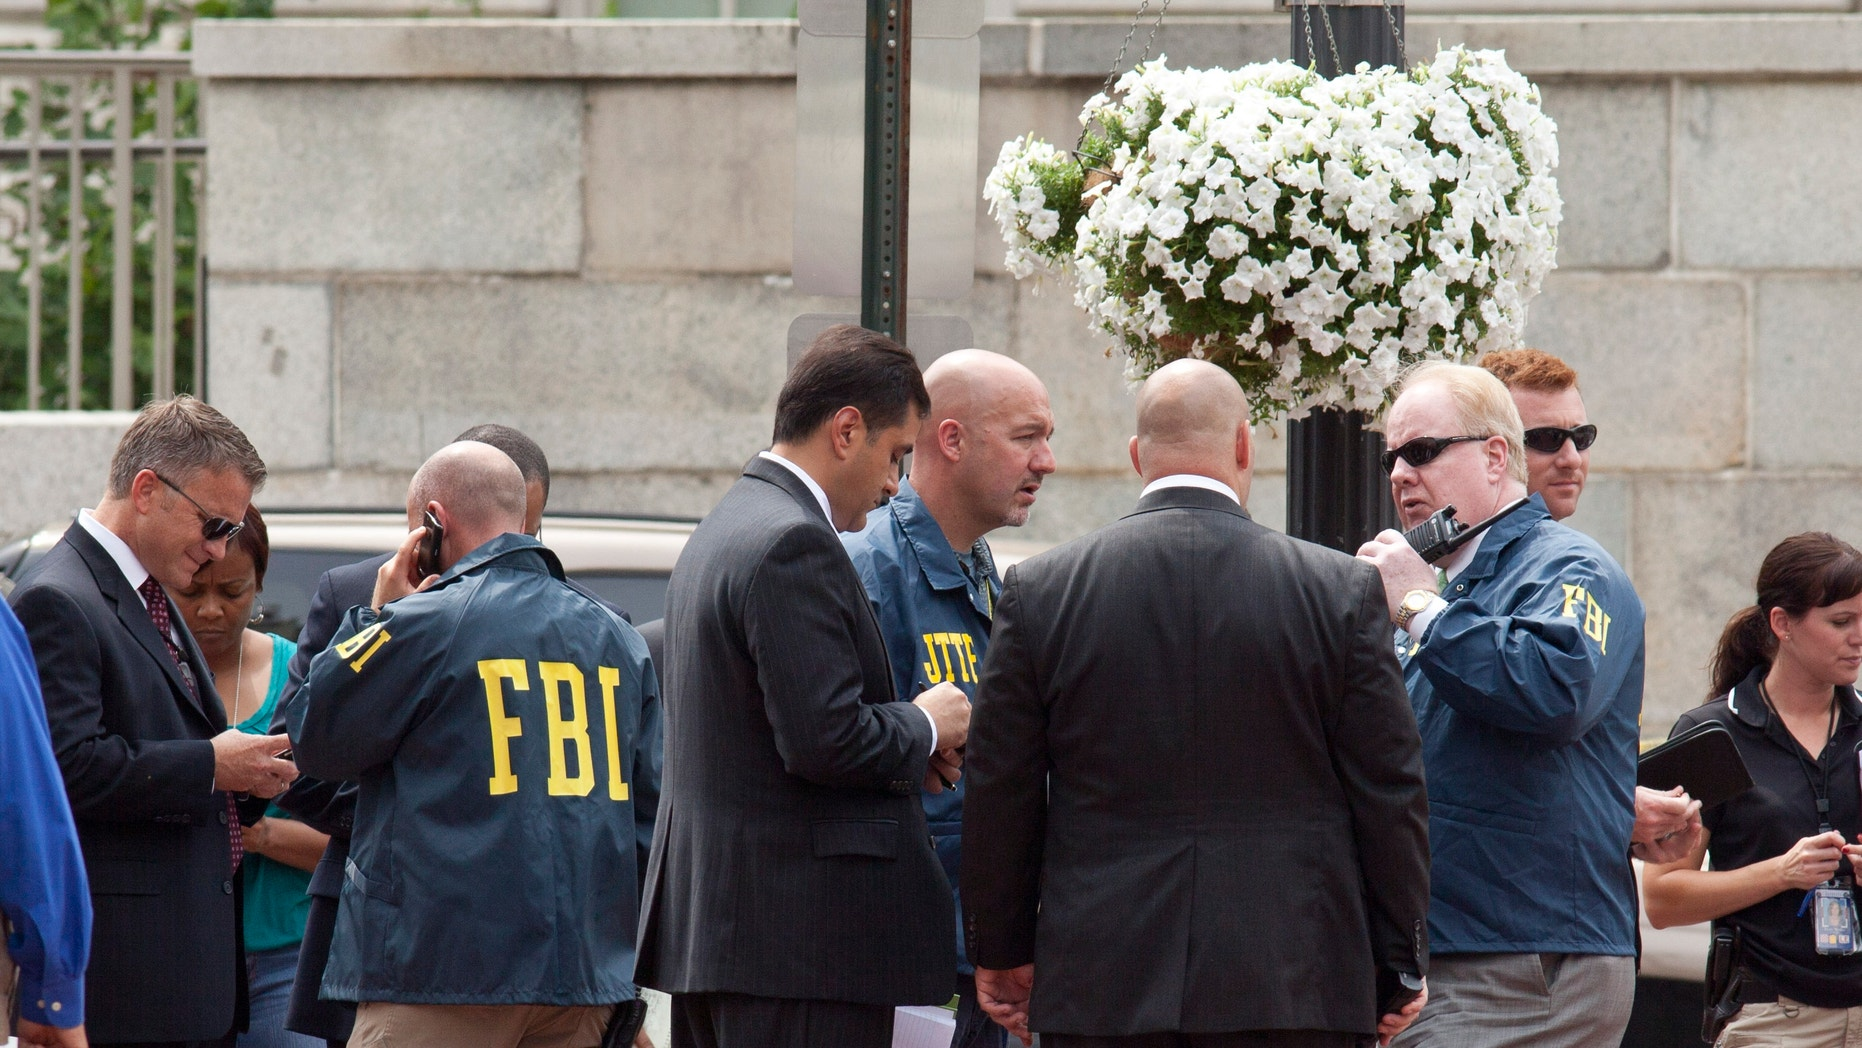 Aug. 15, 2012: Washington Police and FBI agents gather outside the Family Research Council in Washington.